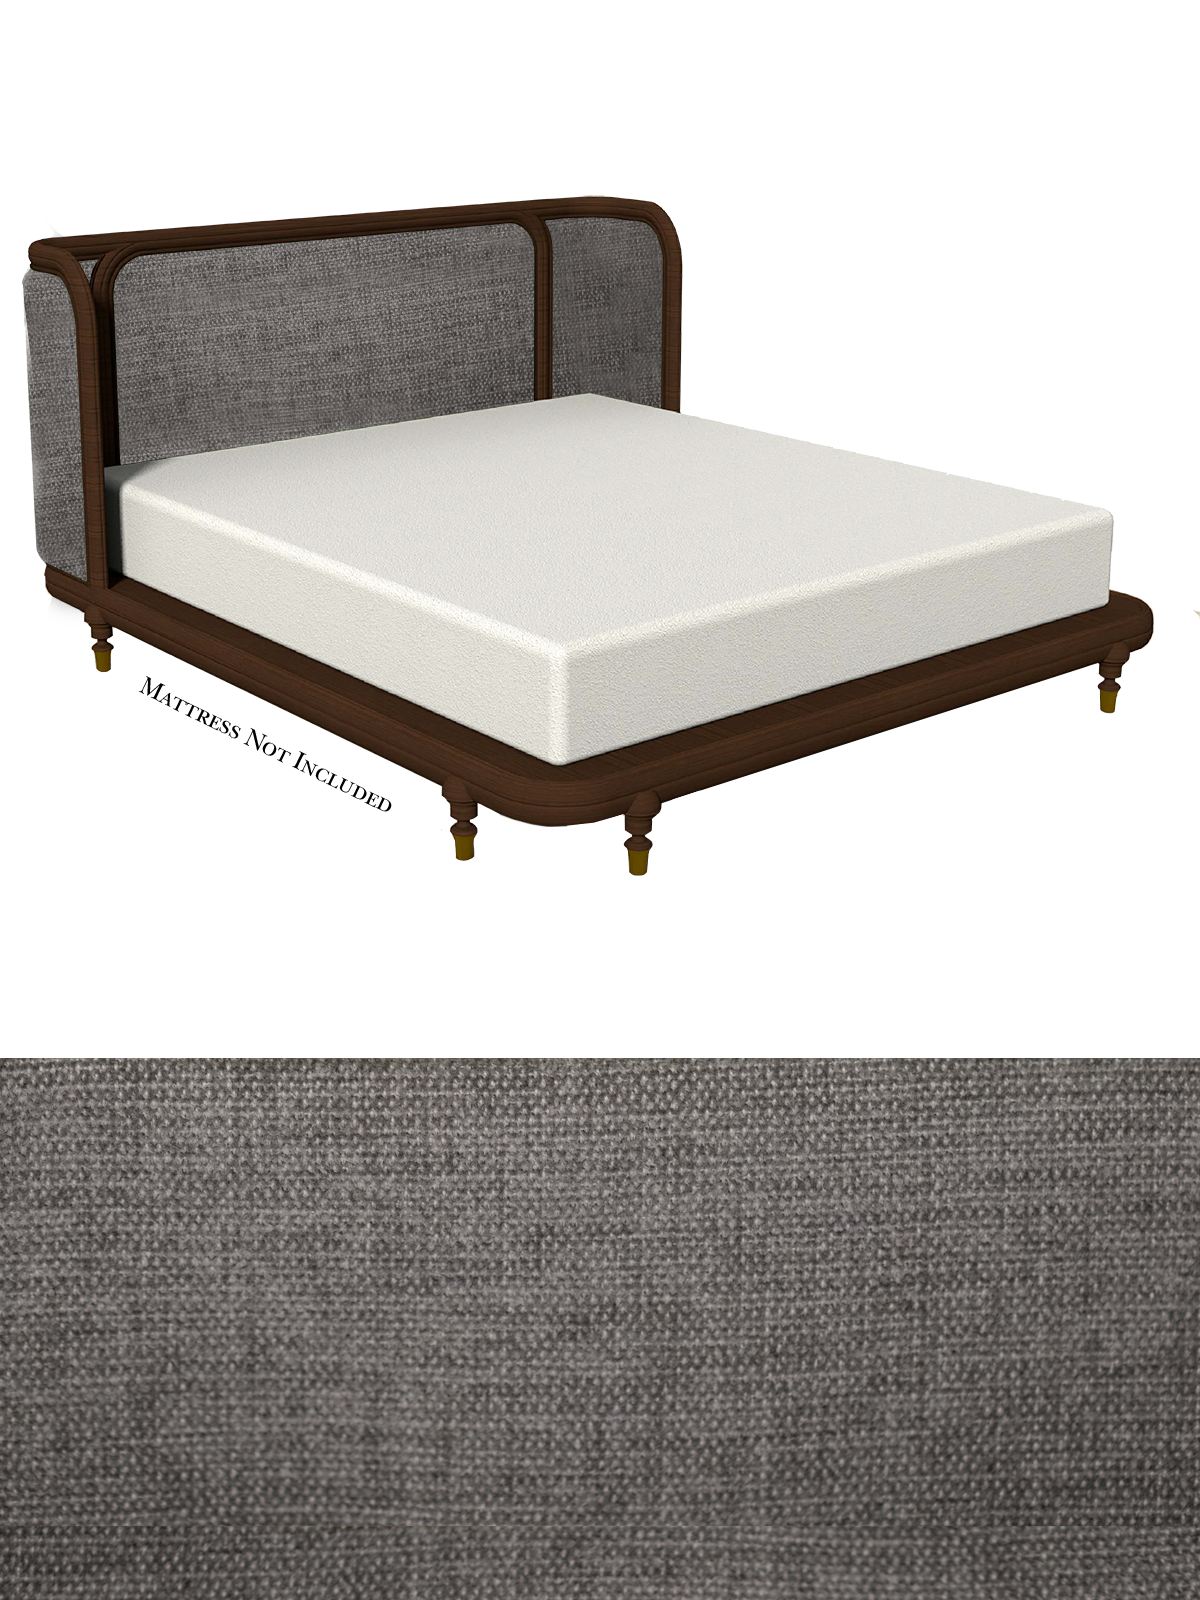 The Maker Simone Bed